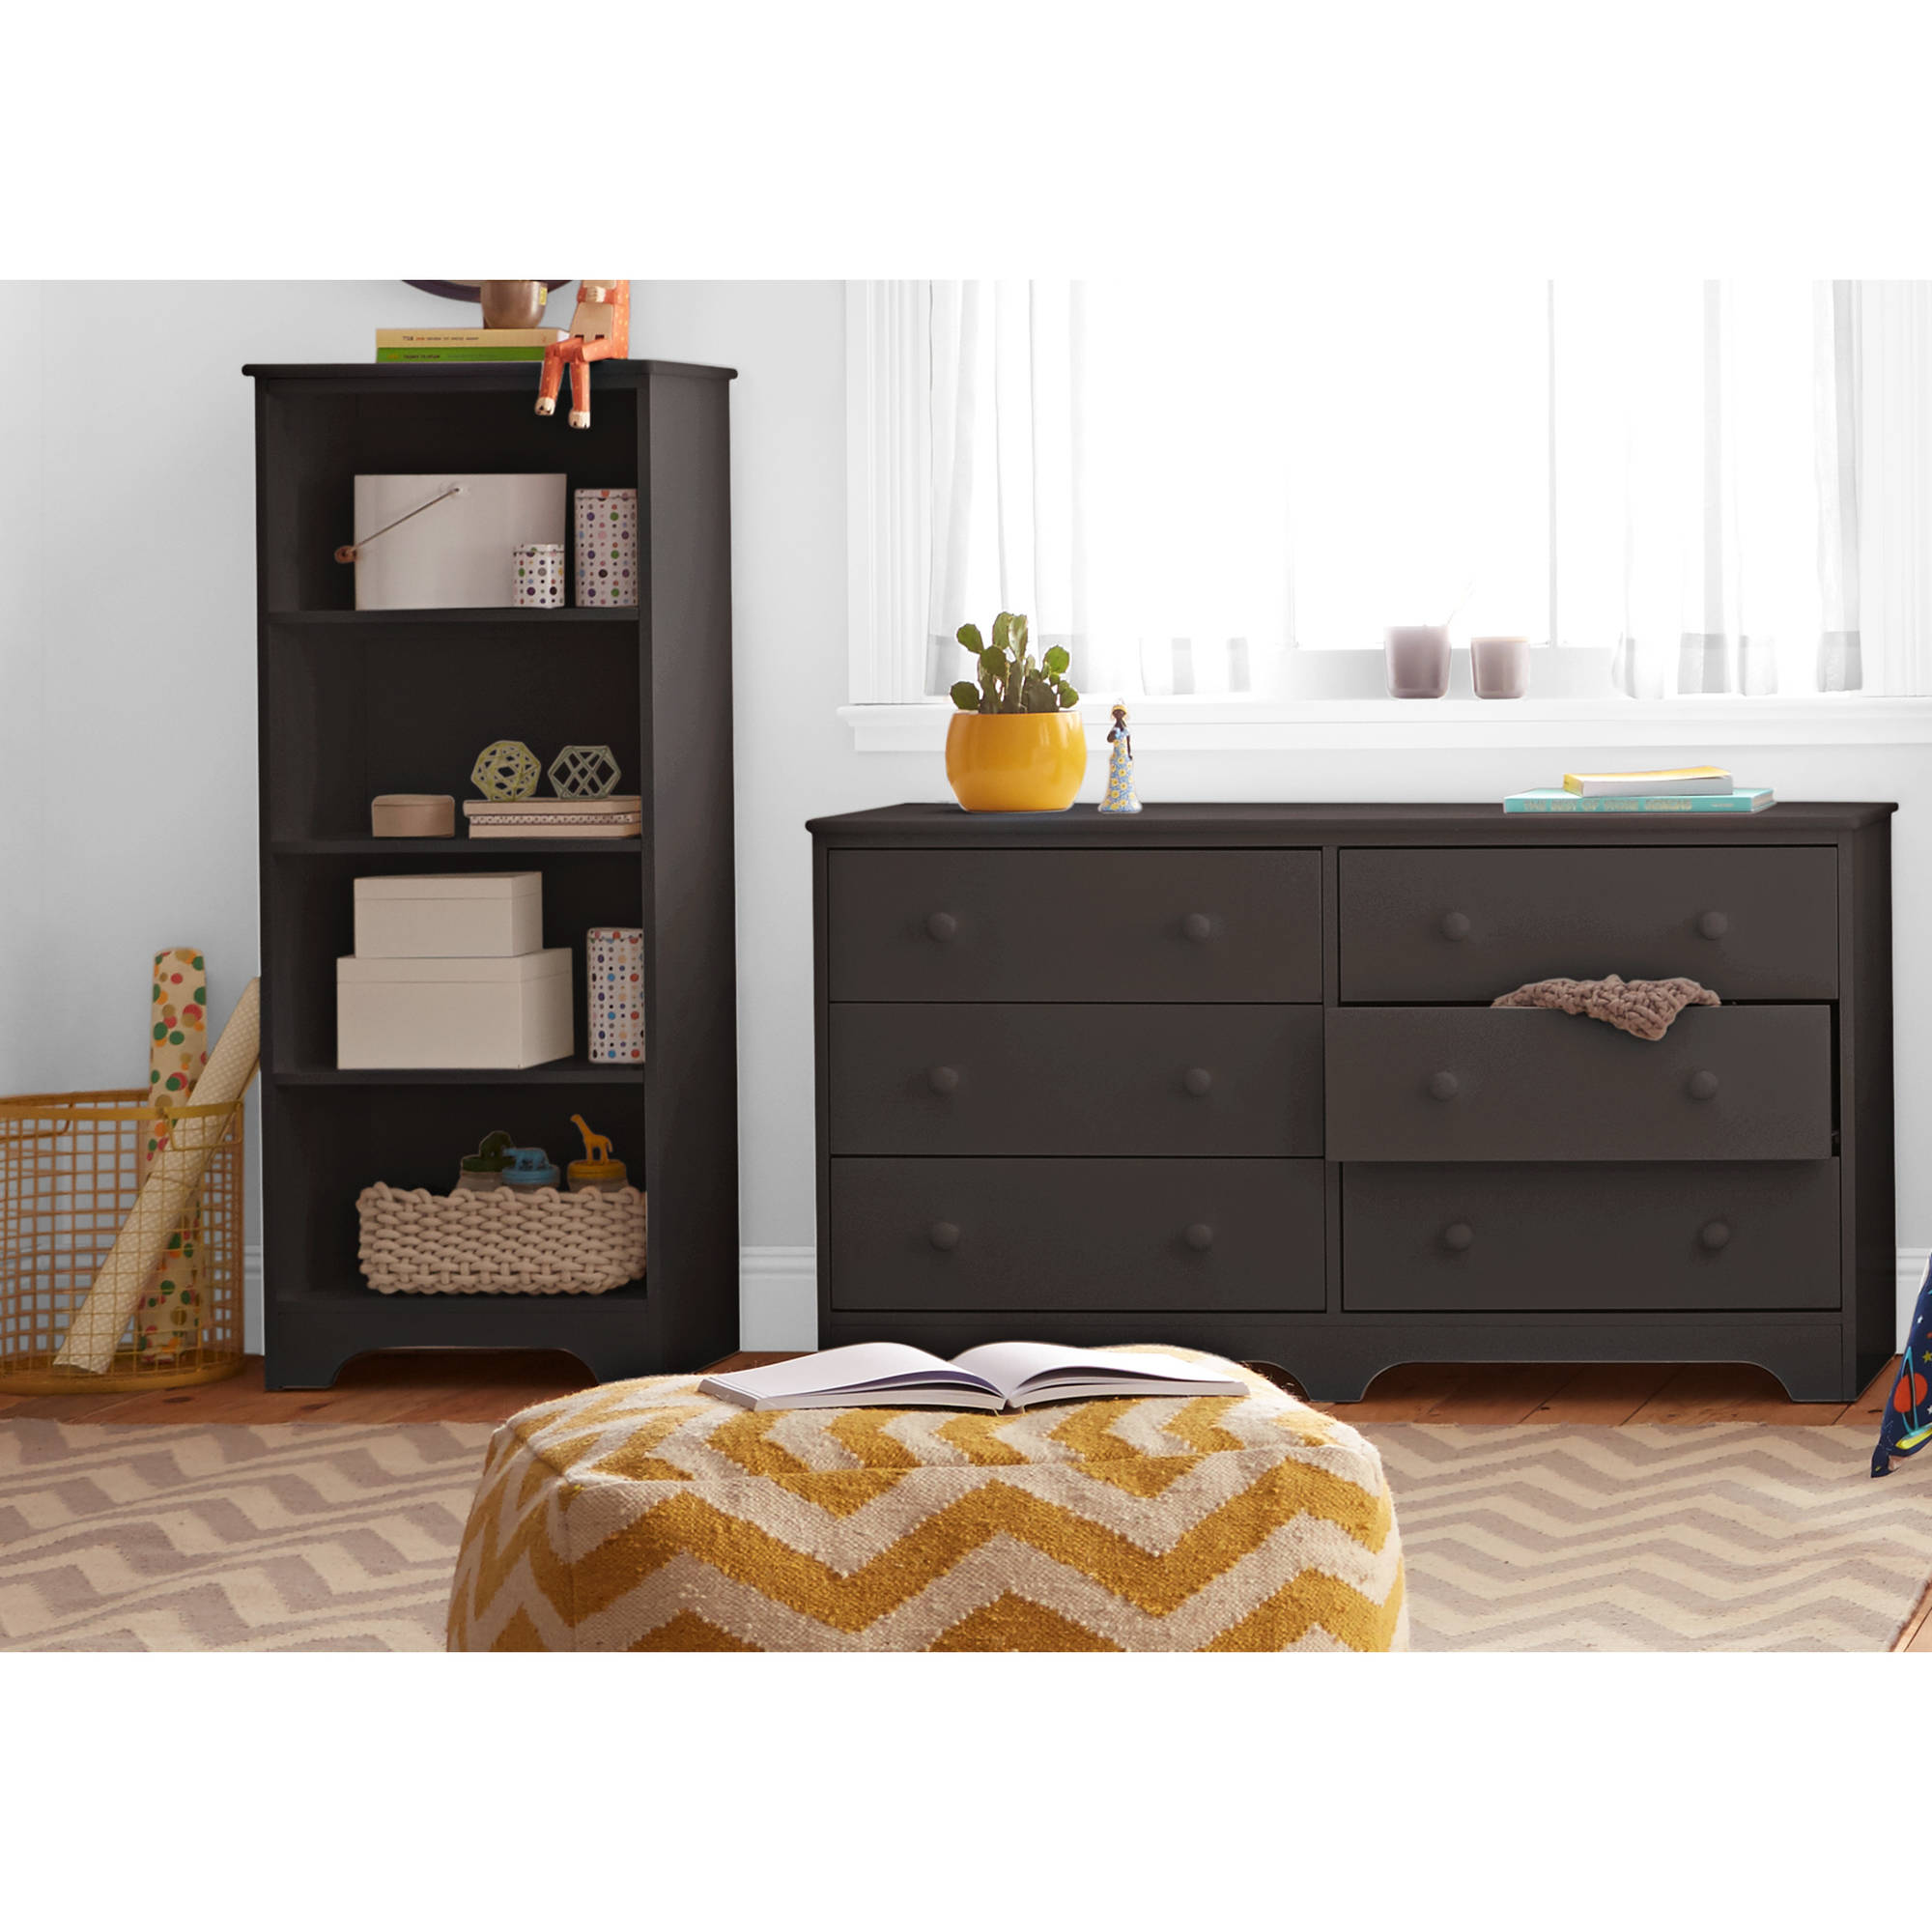 Better Homes and Gardens Kids Pine Creek Bookcase, Espresso by Generic